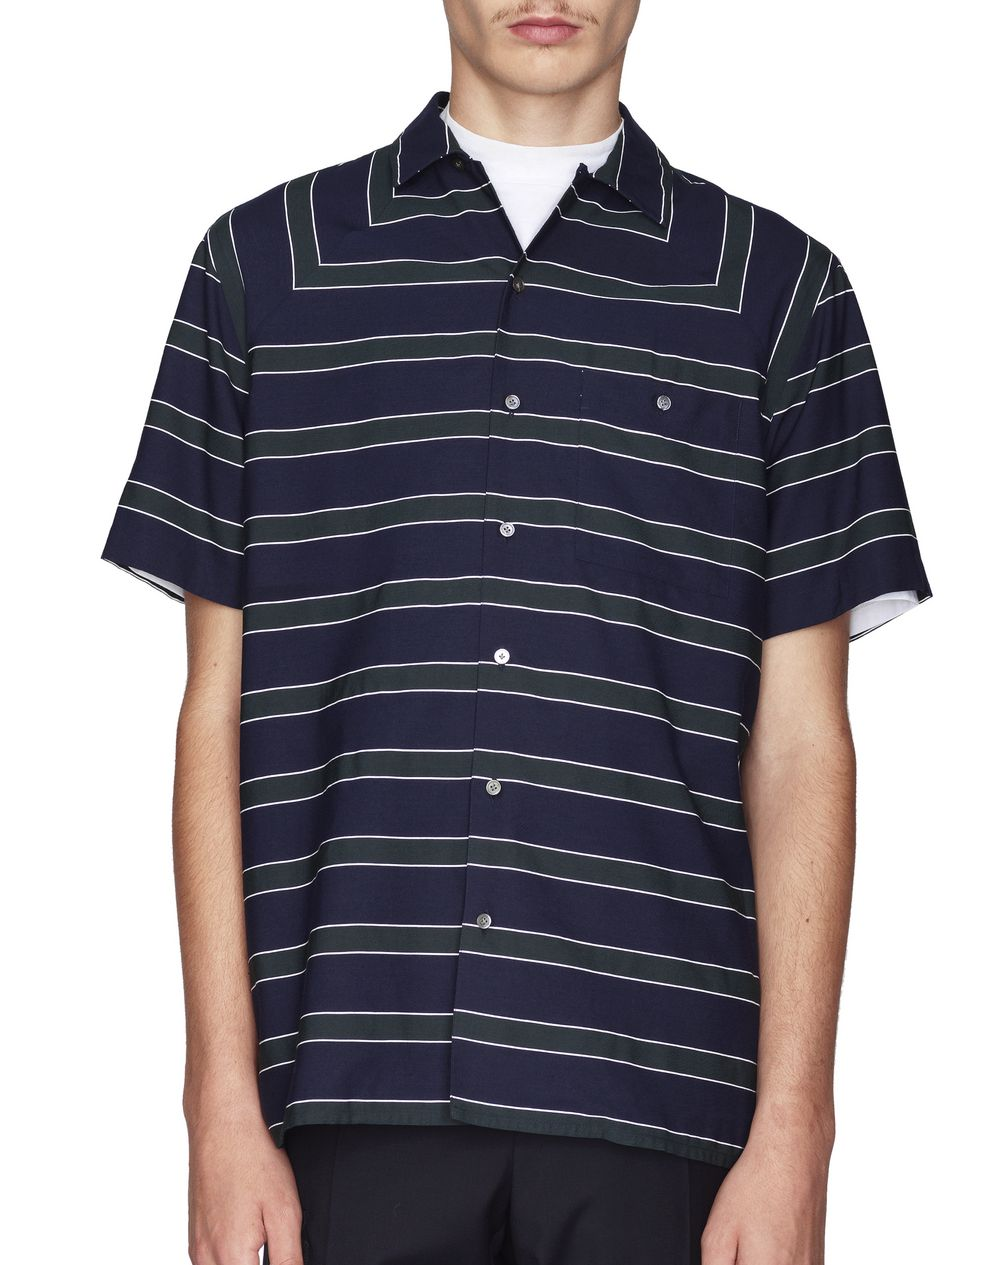 NAVY BLUE STRIPED BOWLING SHIRT - Lanvin